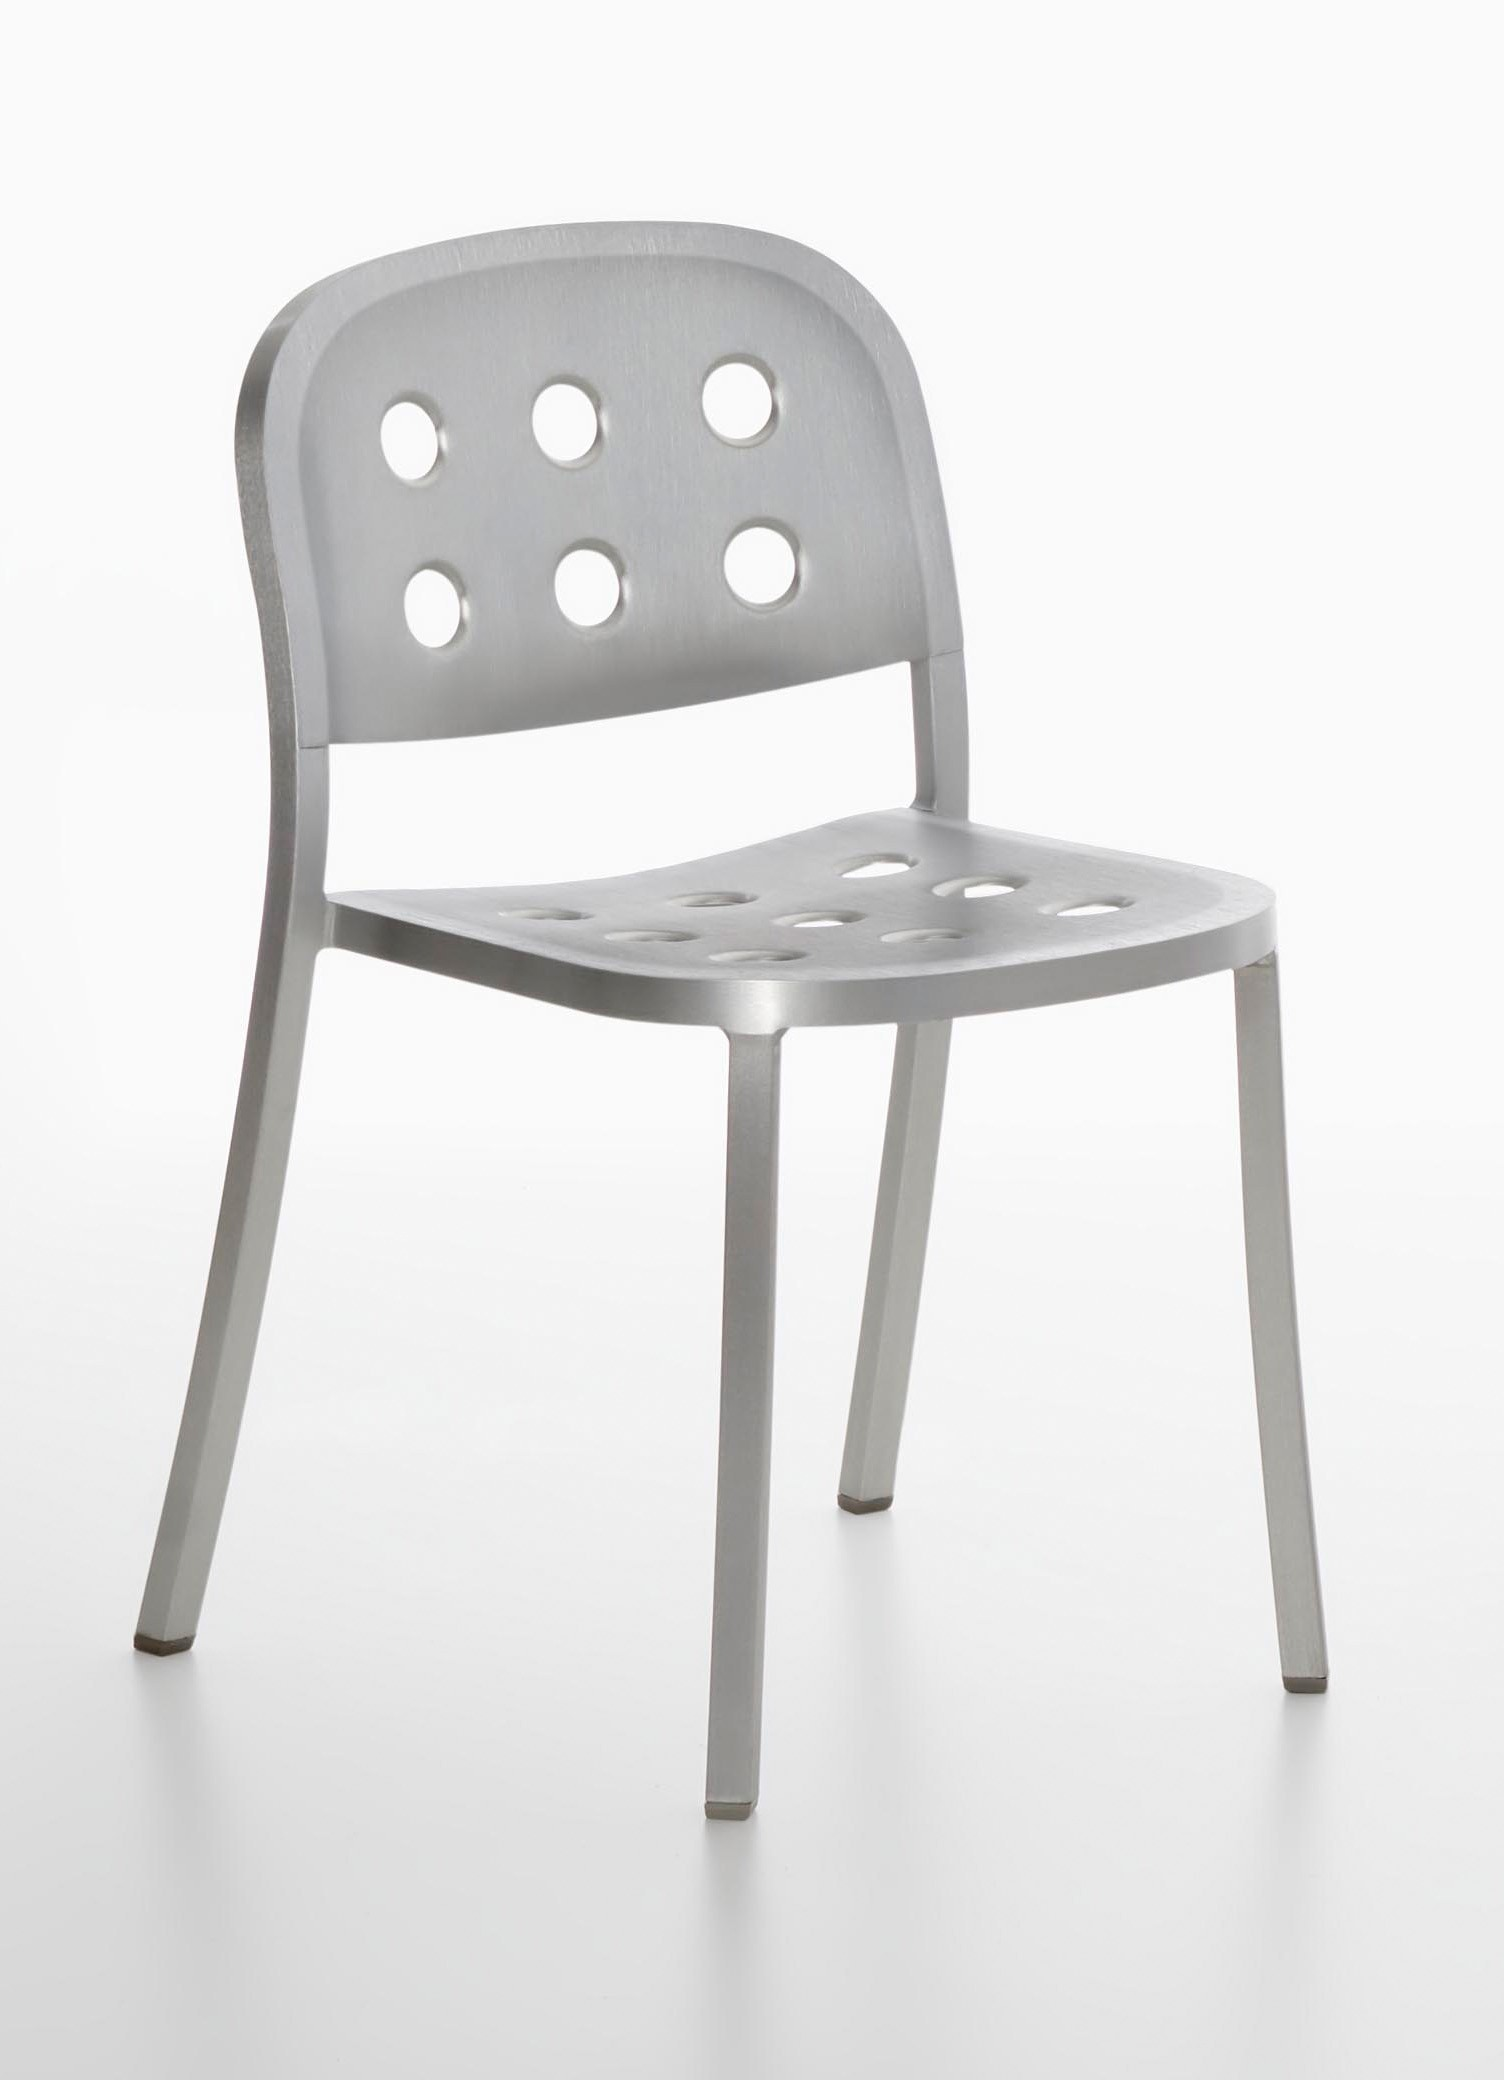 Emeco 1 INCH All Aluminum Stacking Chair By Jasper Morrison